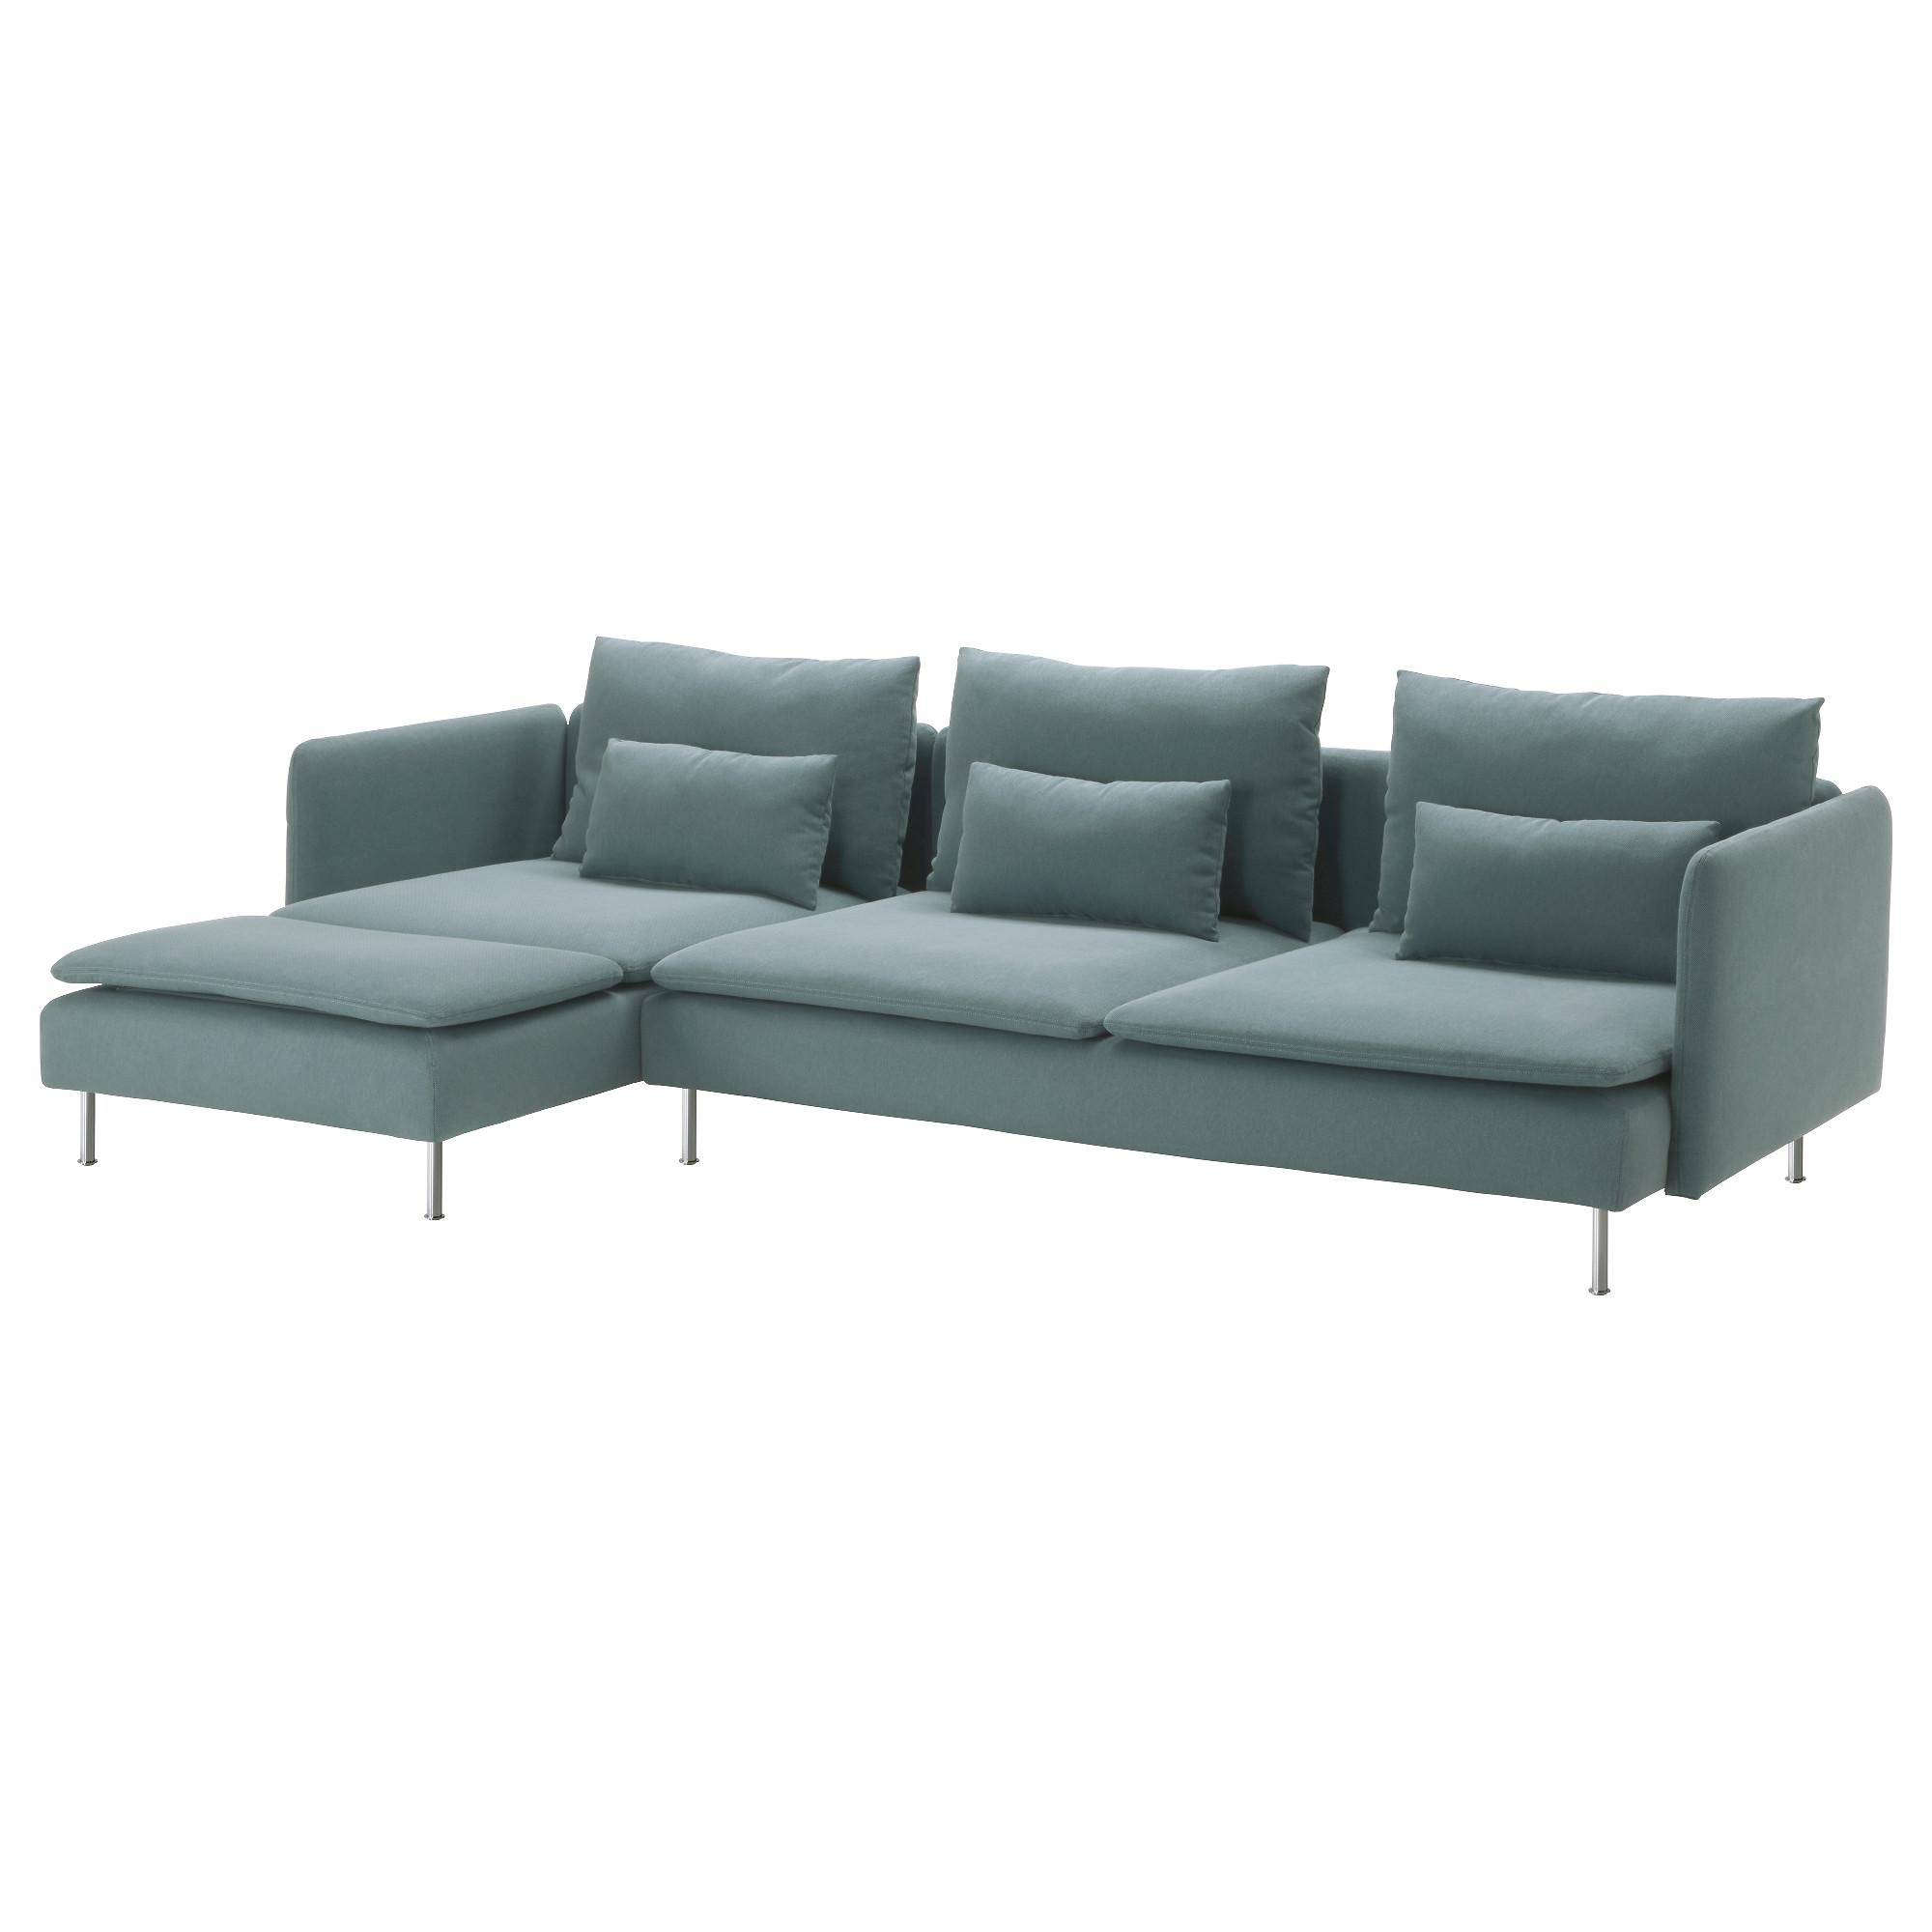 Sectional Sofas & Couches – Ikea Pertaining To Ikea Sectional Sofa Bed (View 12 of 20)